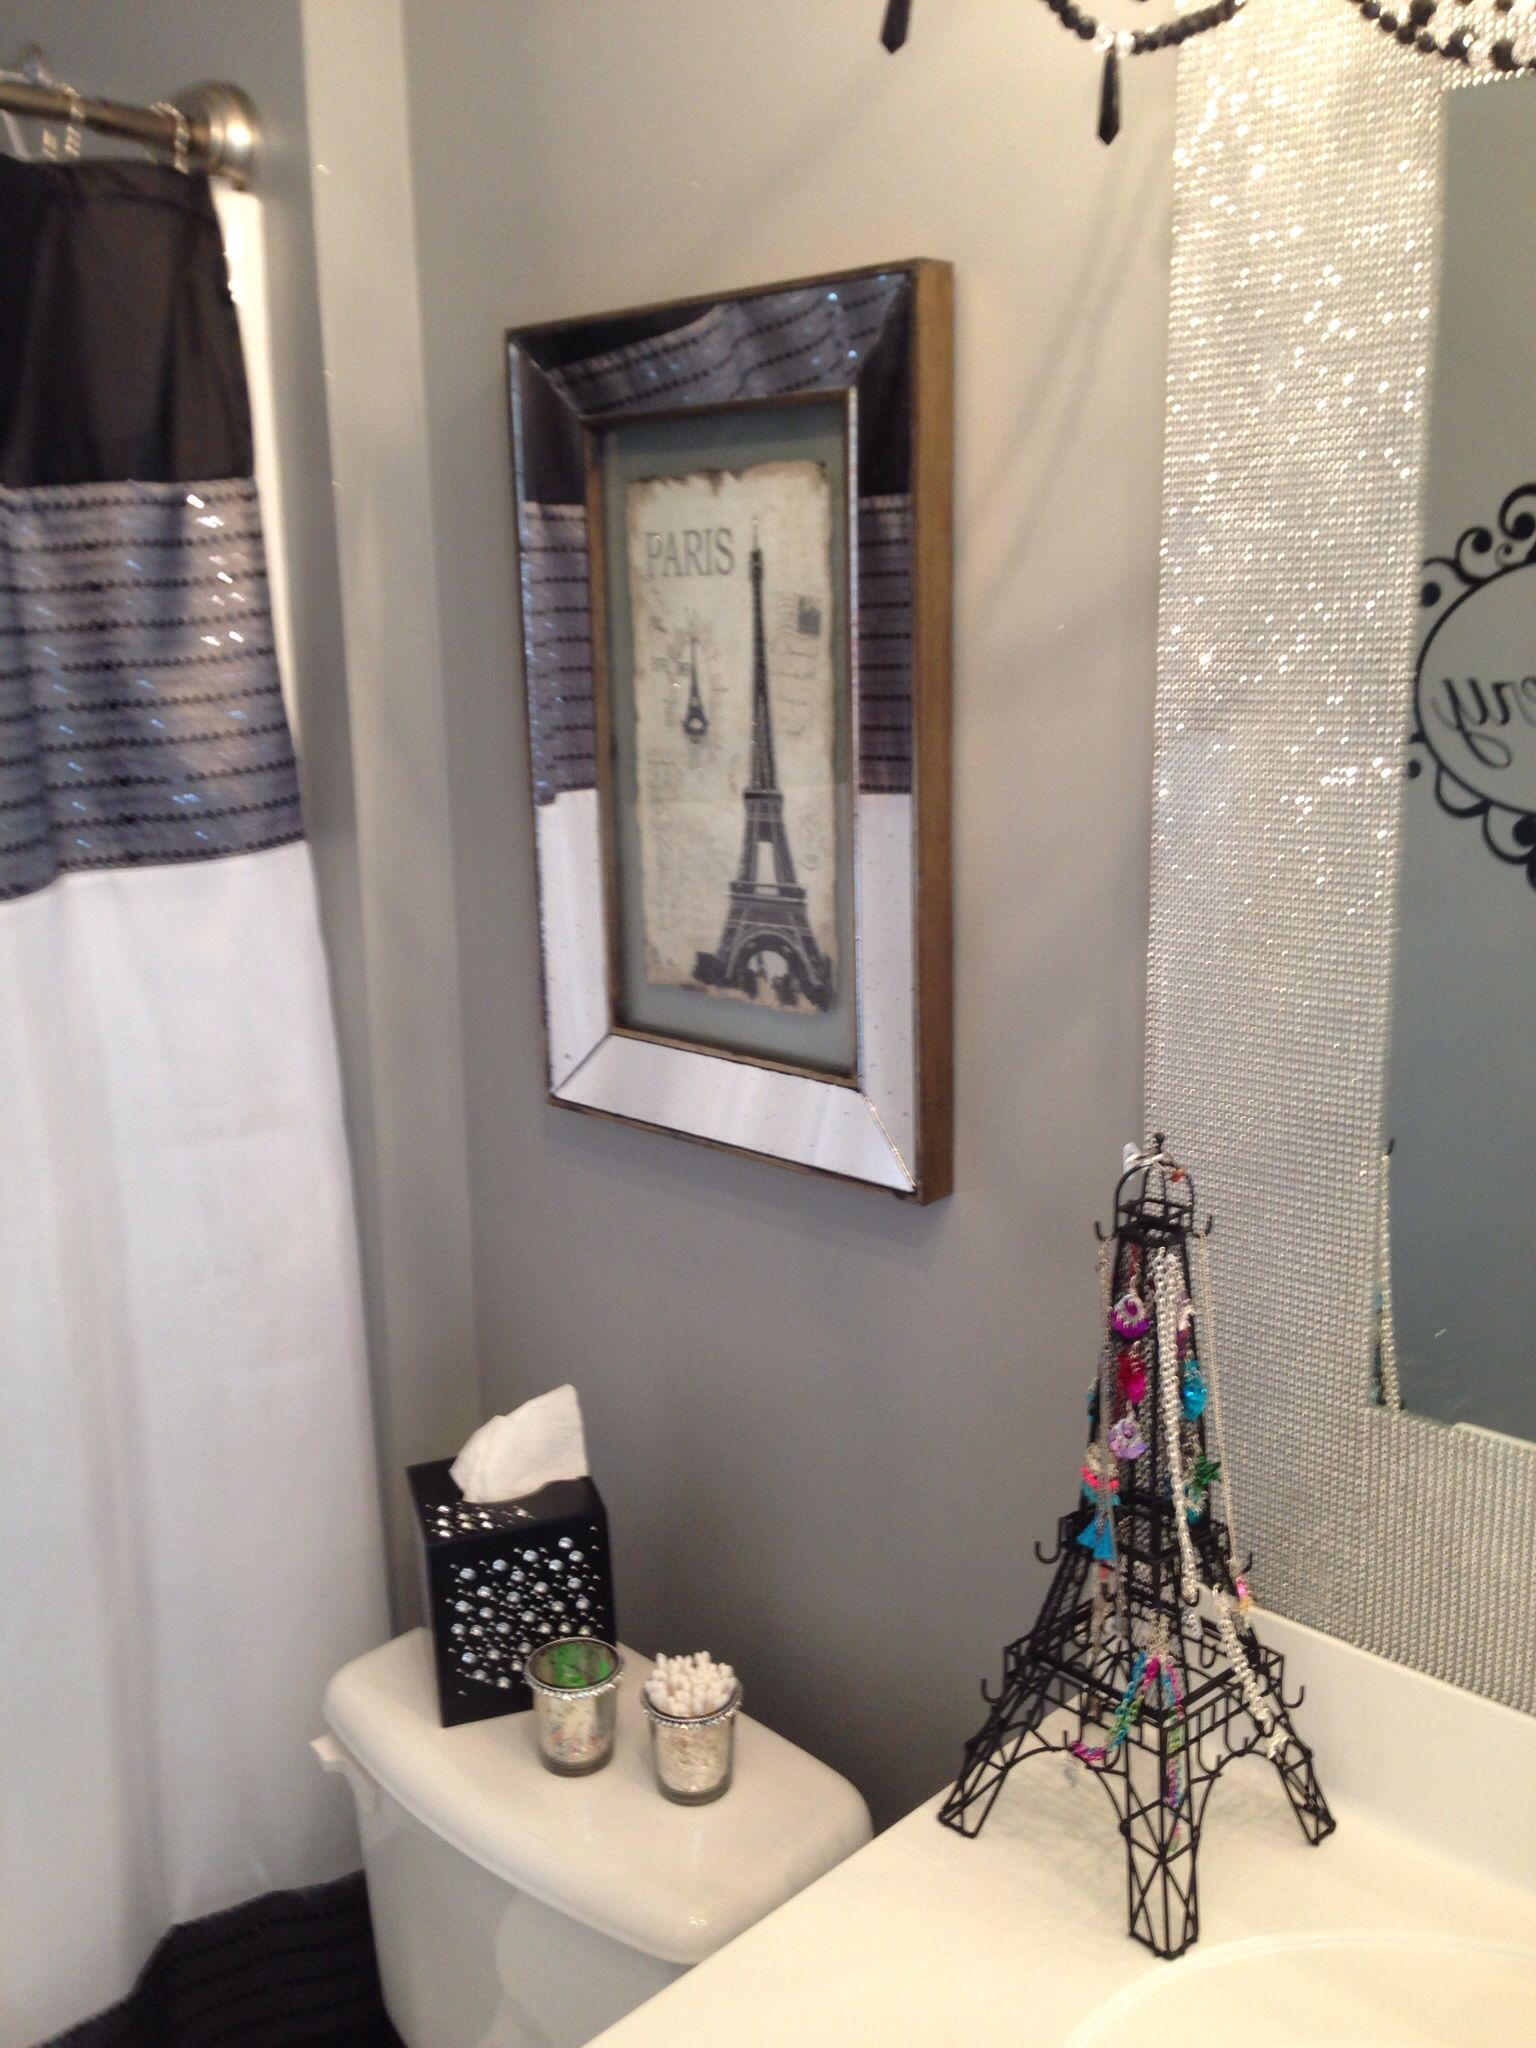 Paris bathroom decorating ideas - Find This Pin And More On Decor Ideas